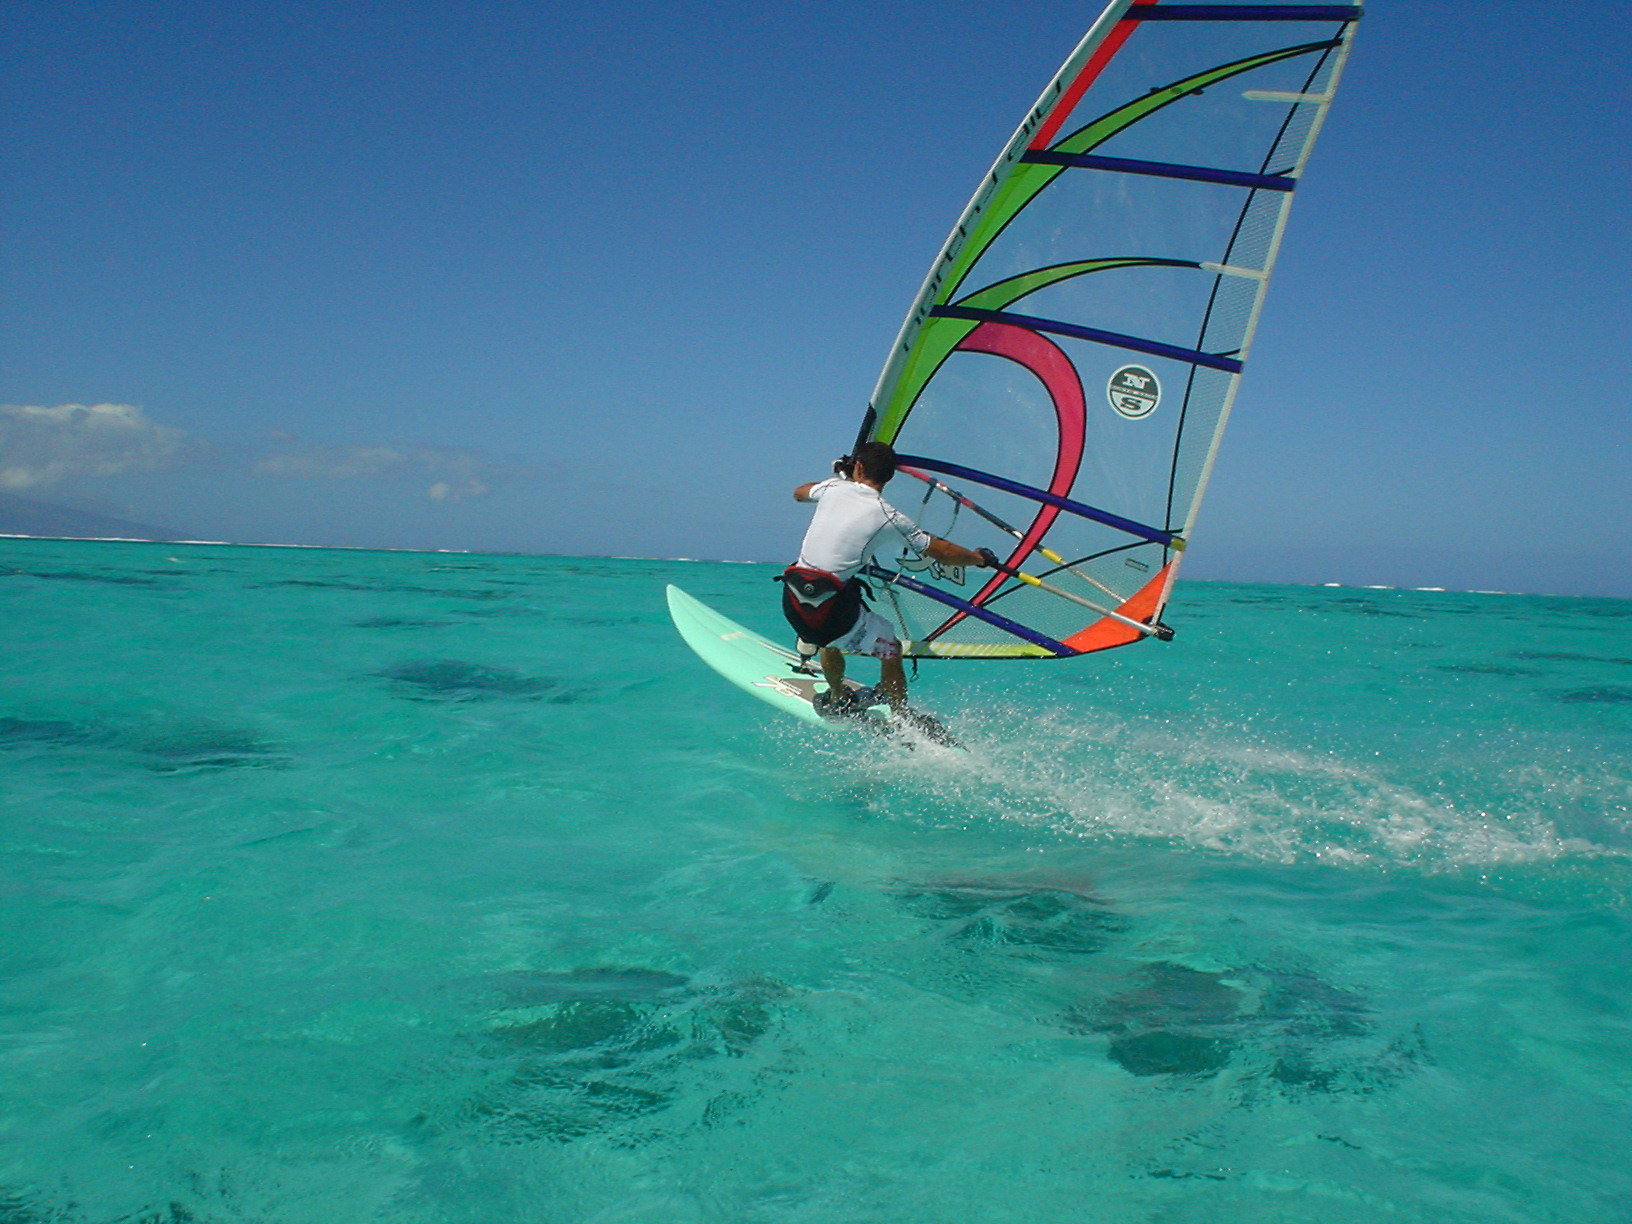 Las Terrenas – Things To Do – Windsurfing